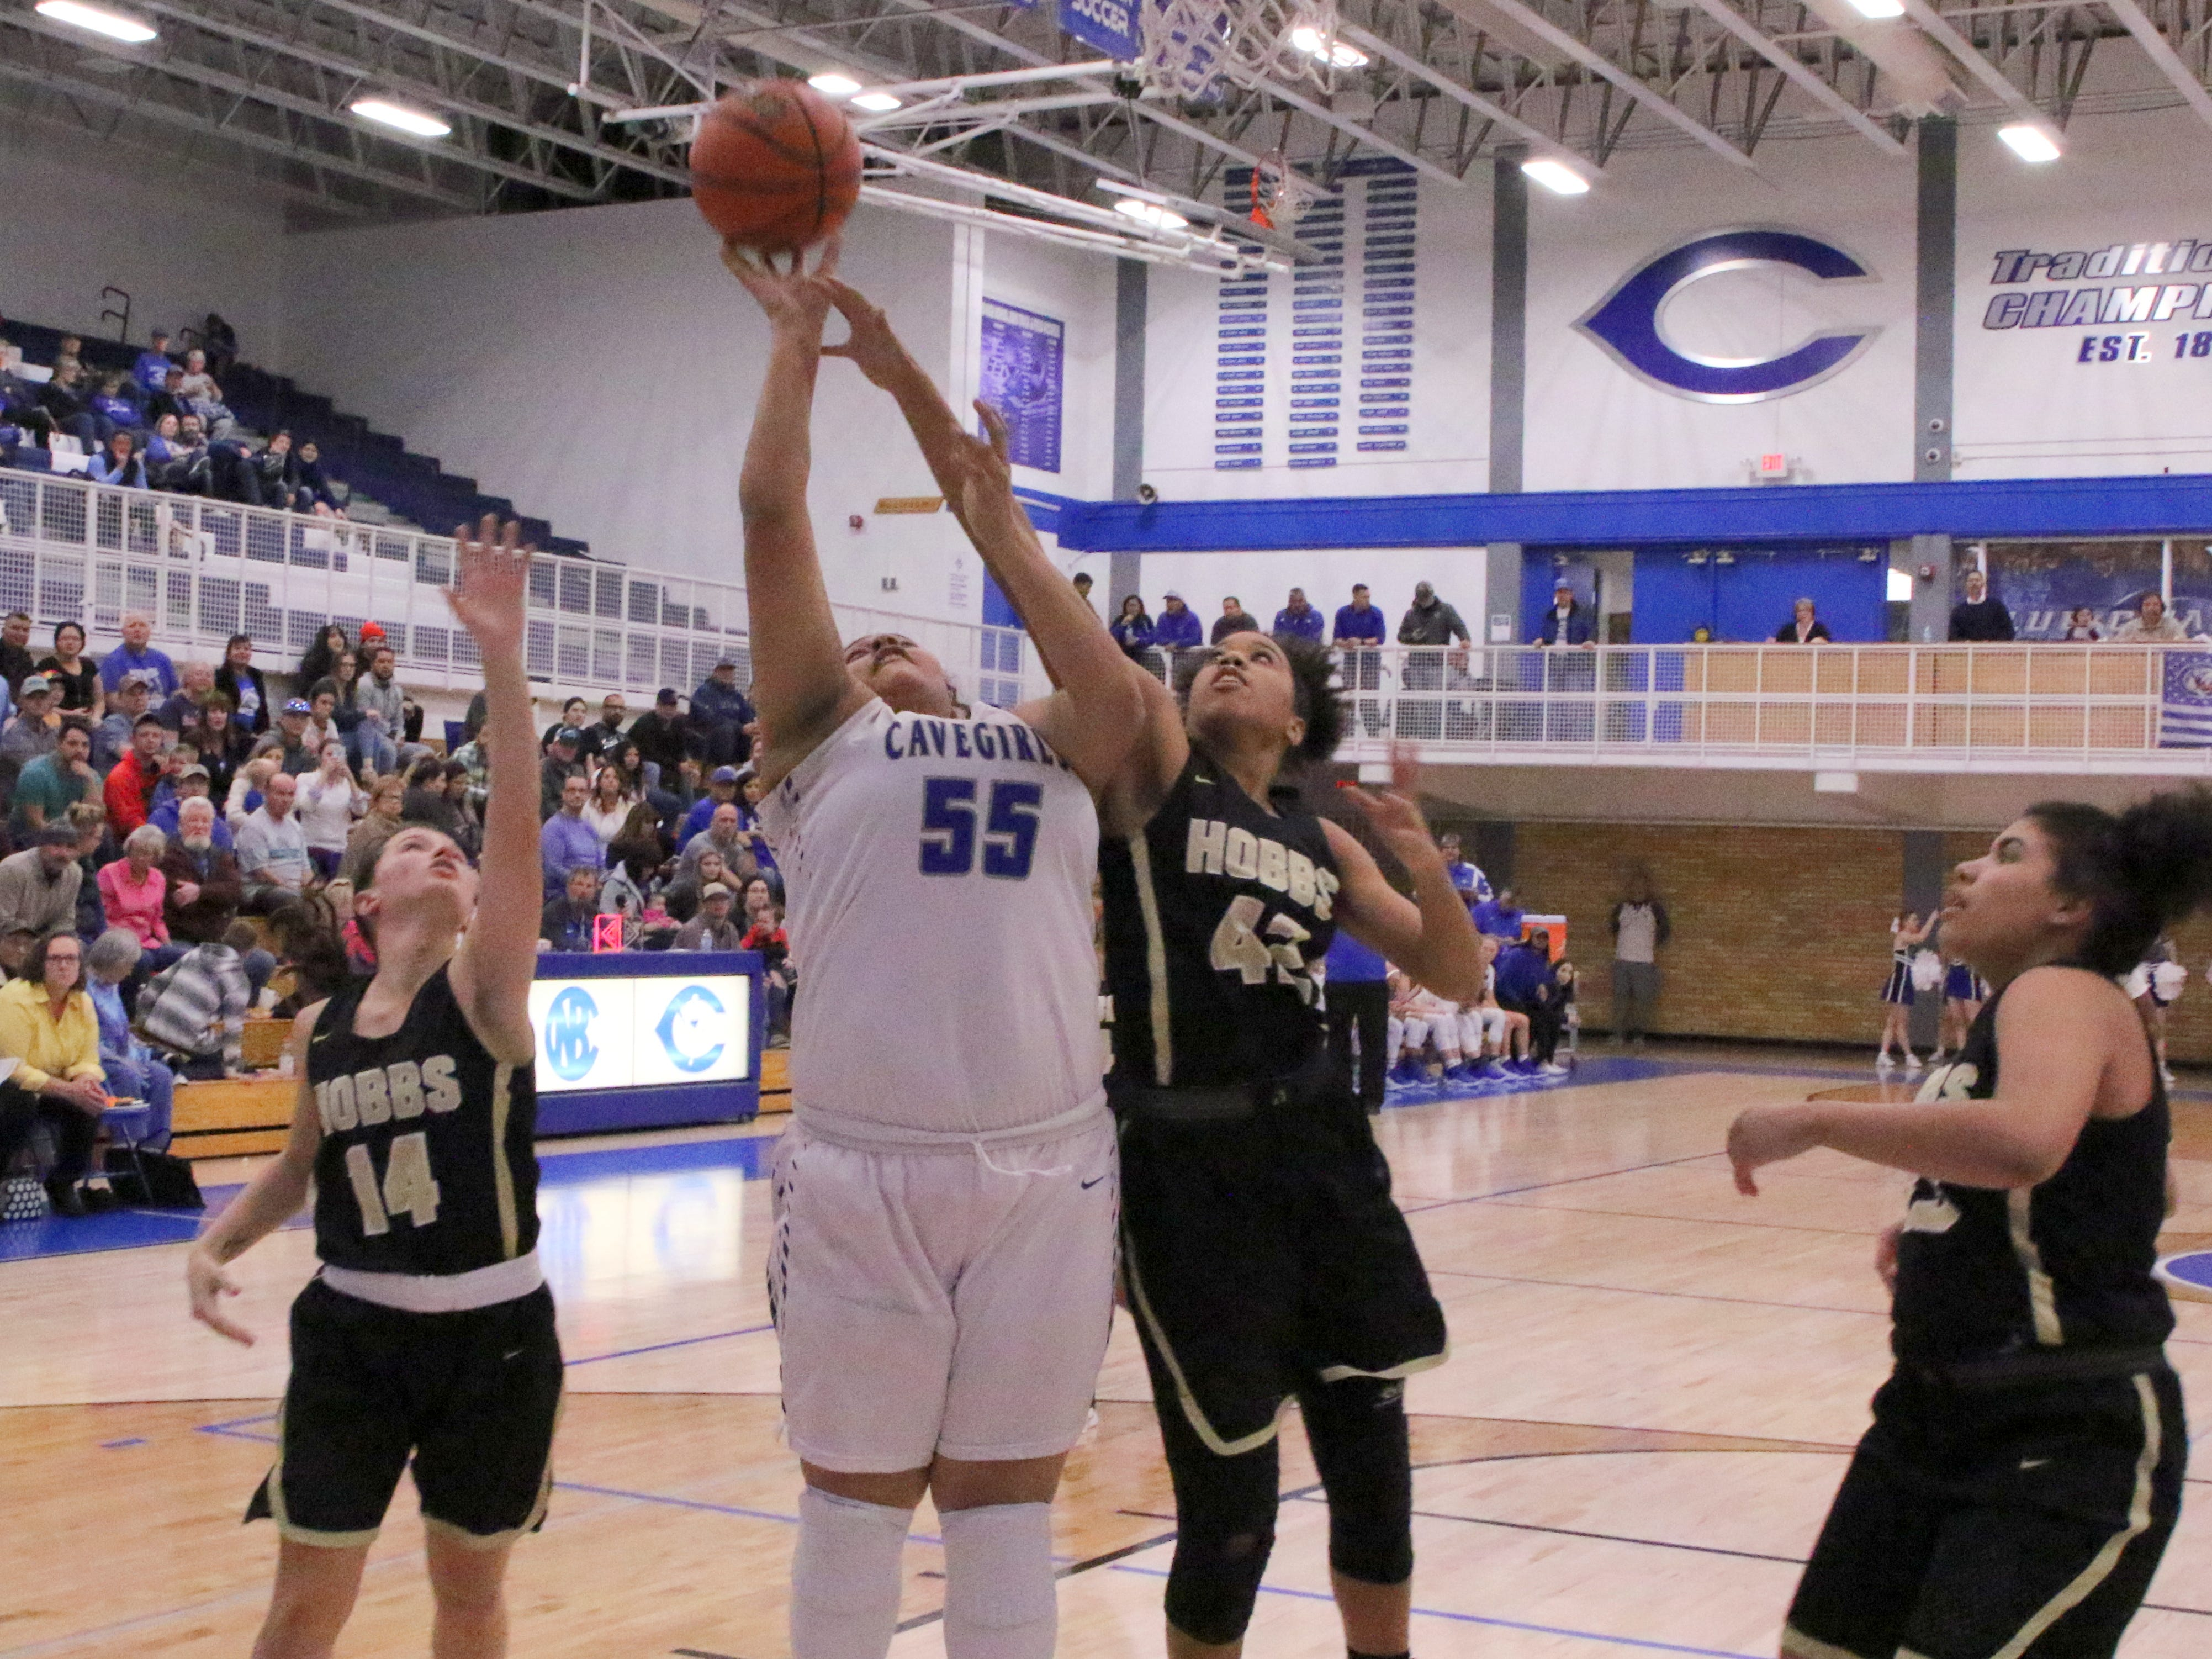 Carlsbad's Kaliyah Montoya (55) goes for a contested layup against Hobbs' Elise Turrubiates (42) during Friday's game. Montoya led all scorers with 17 points and Hobbs won, 46-42.